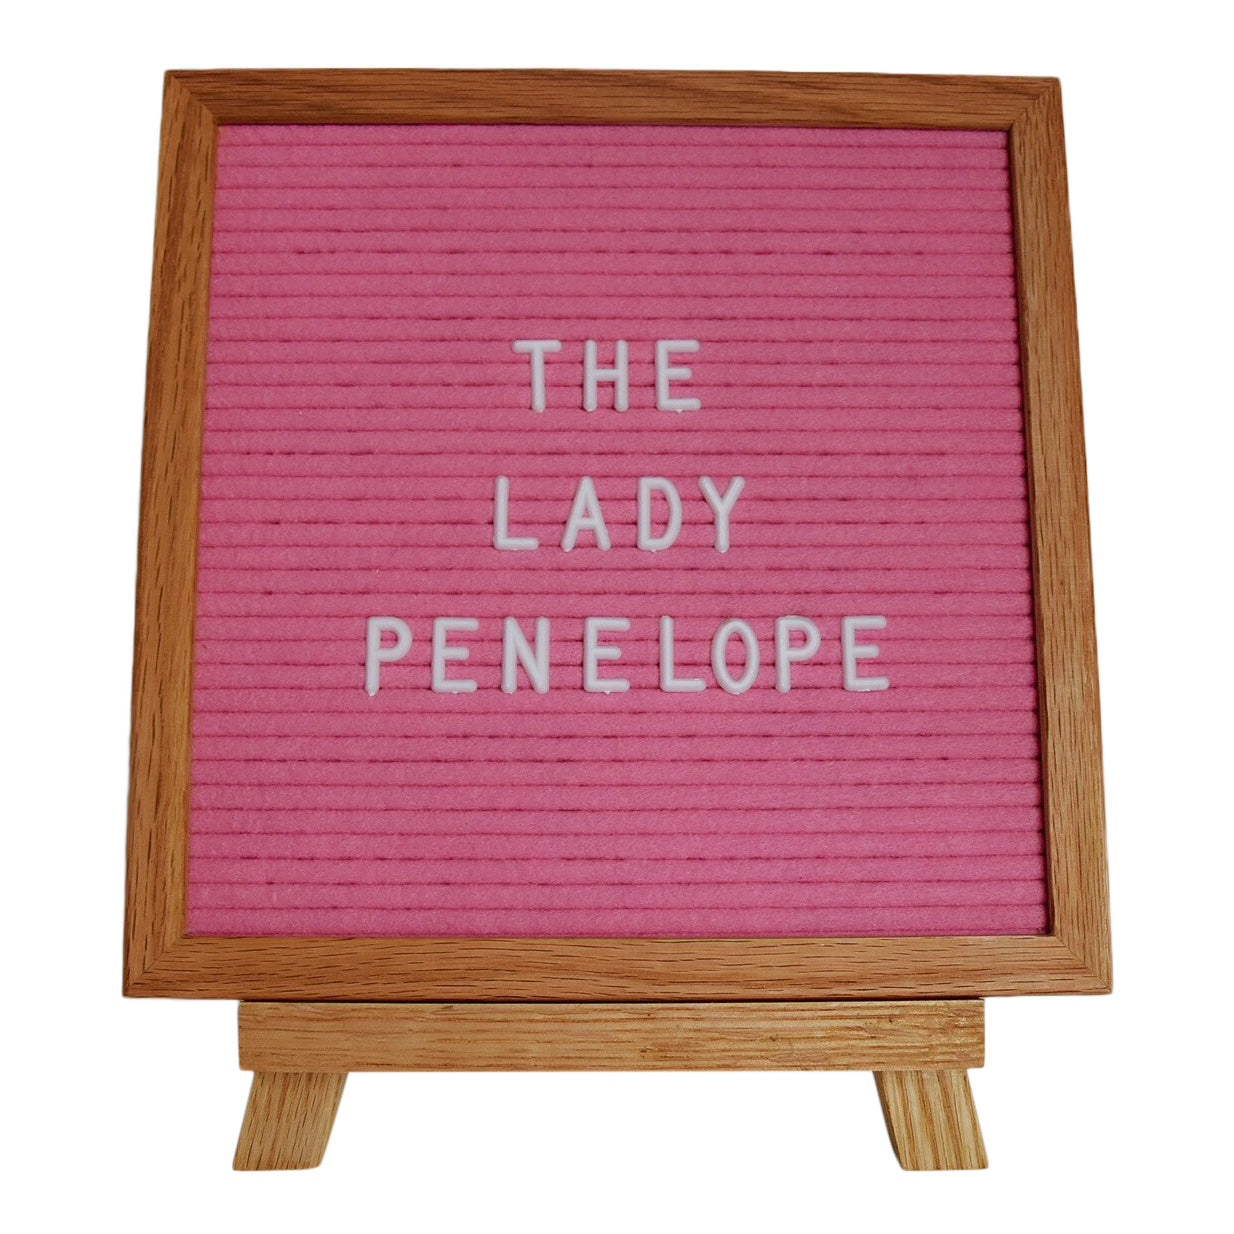 The Lady Penelope